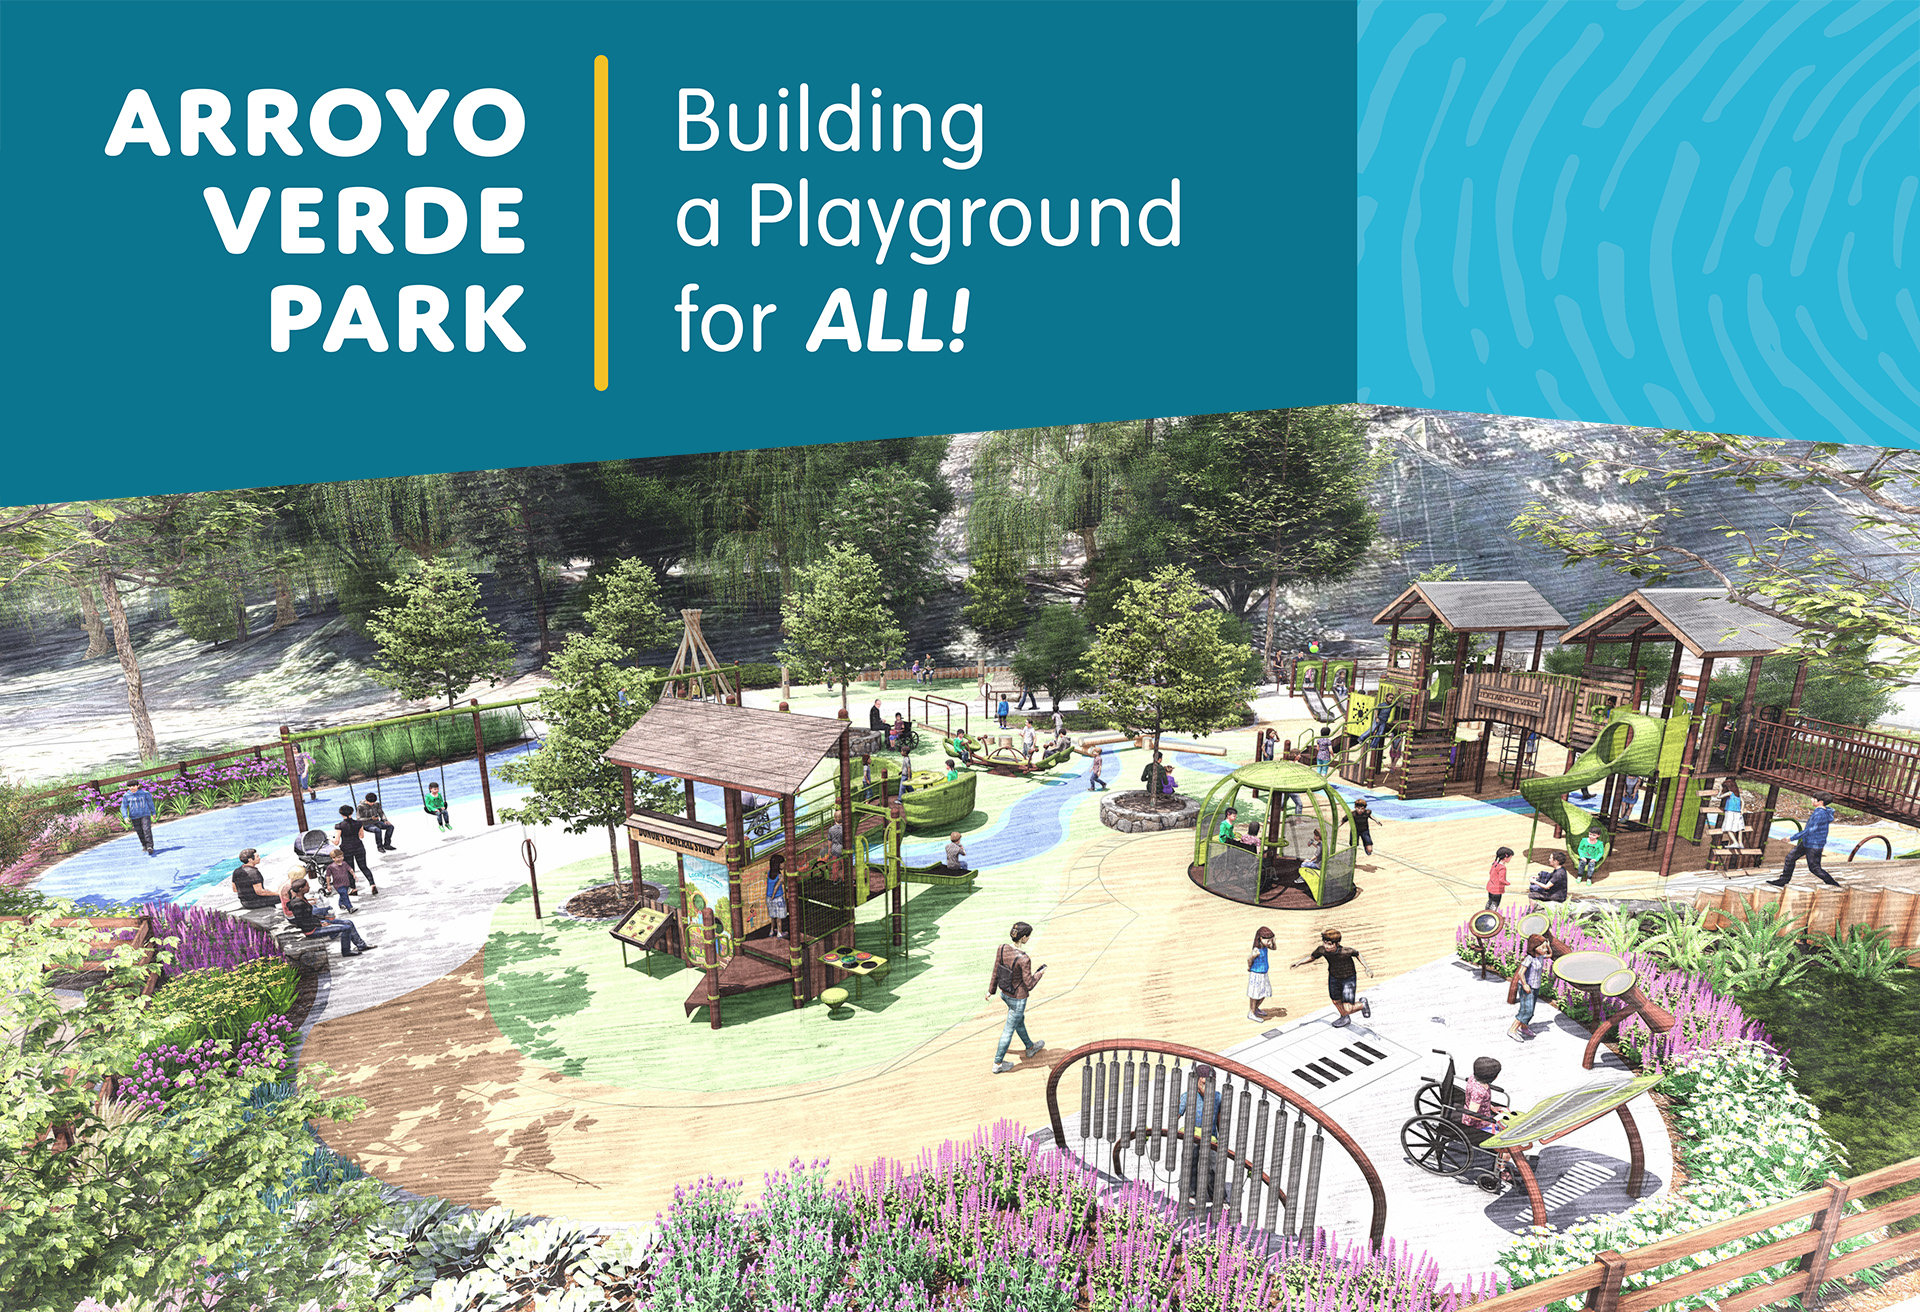 Arroyo Verde Park Playground Rebuild - Help us rebuild the playground that was destroyed during the Thomas Fire and create a new inclusive playground.